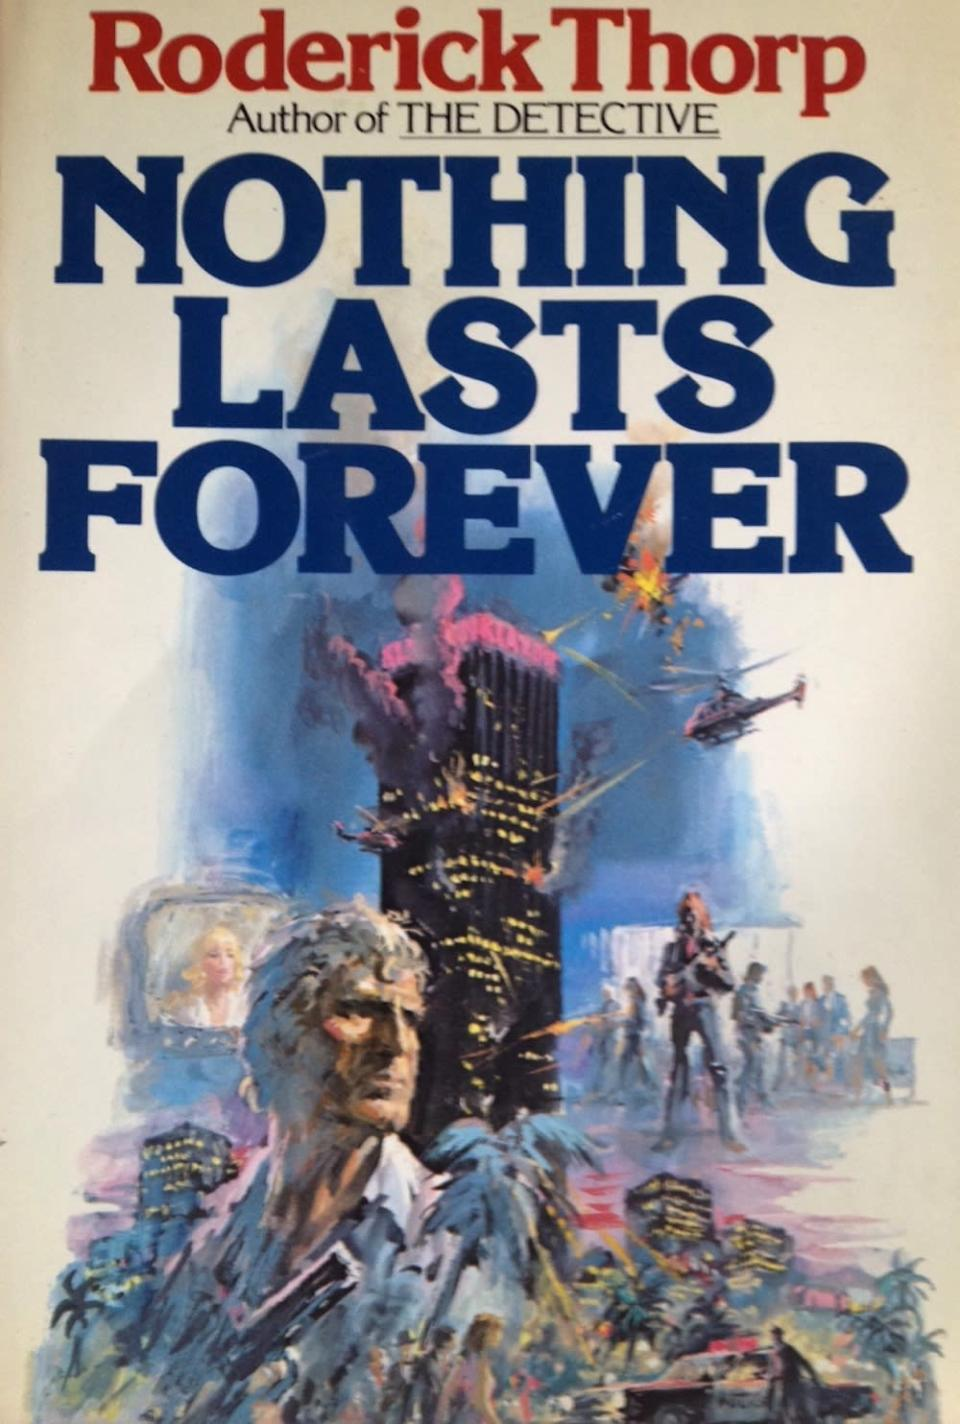 The cover of <i>Nothing Lasts Forever</i> hints at what would become some key <i>Die Hard</i> plot points. (Image: W.W. Norton & Co.)